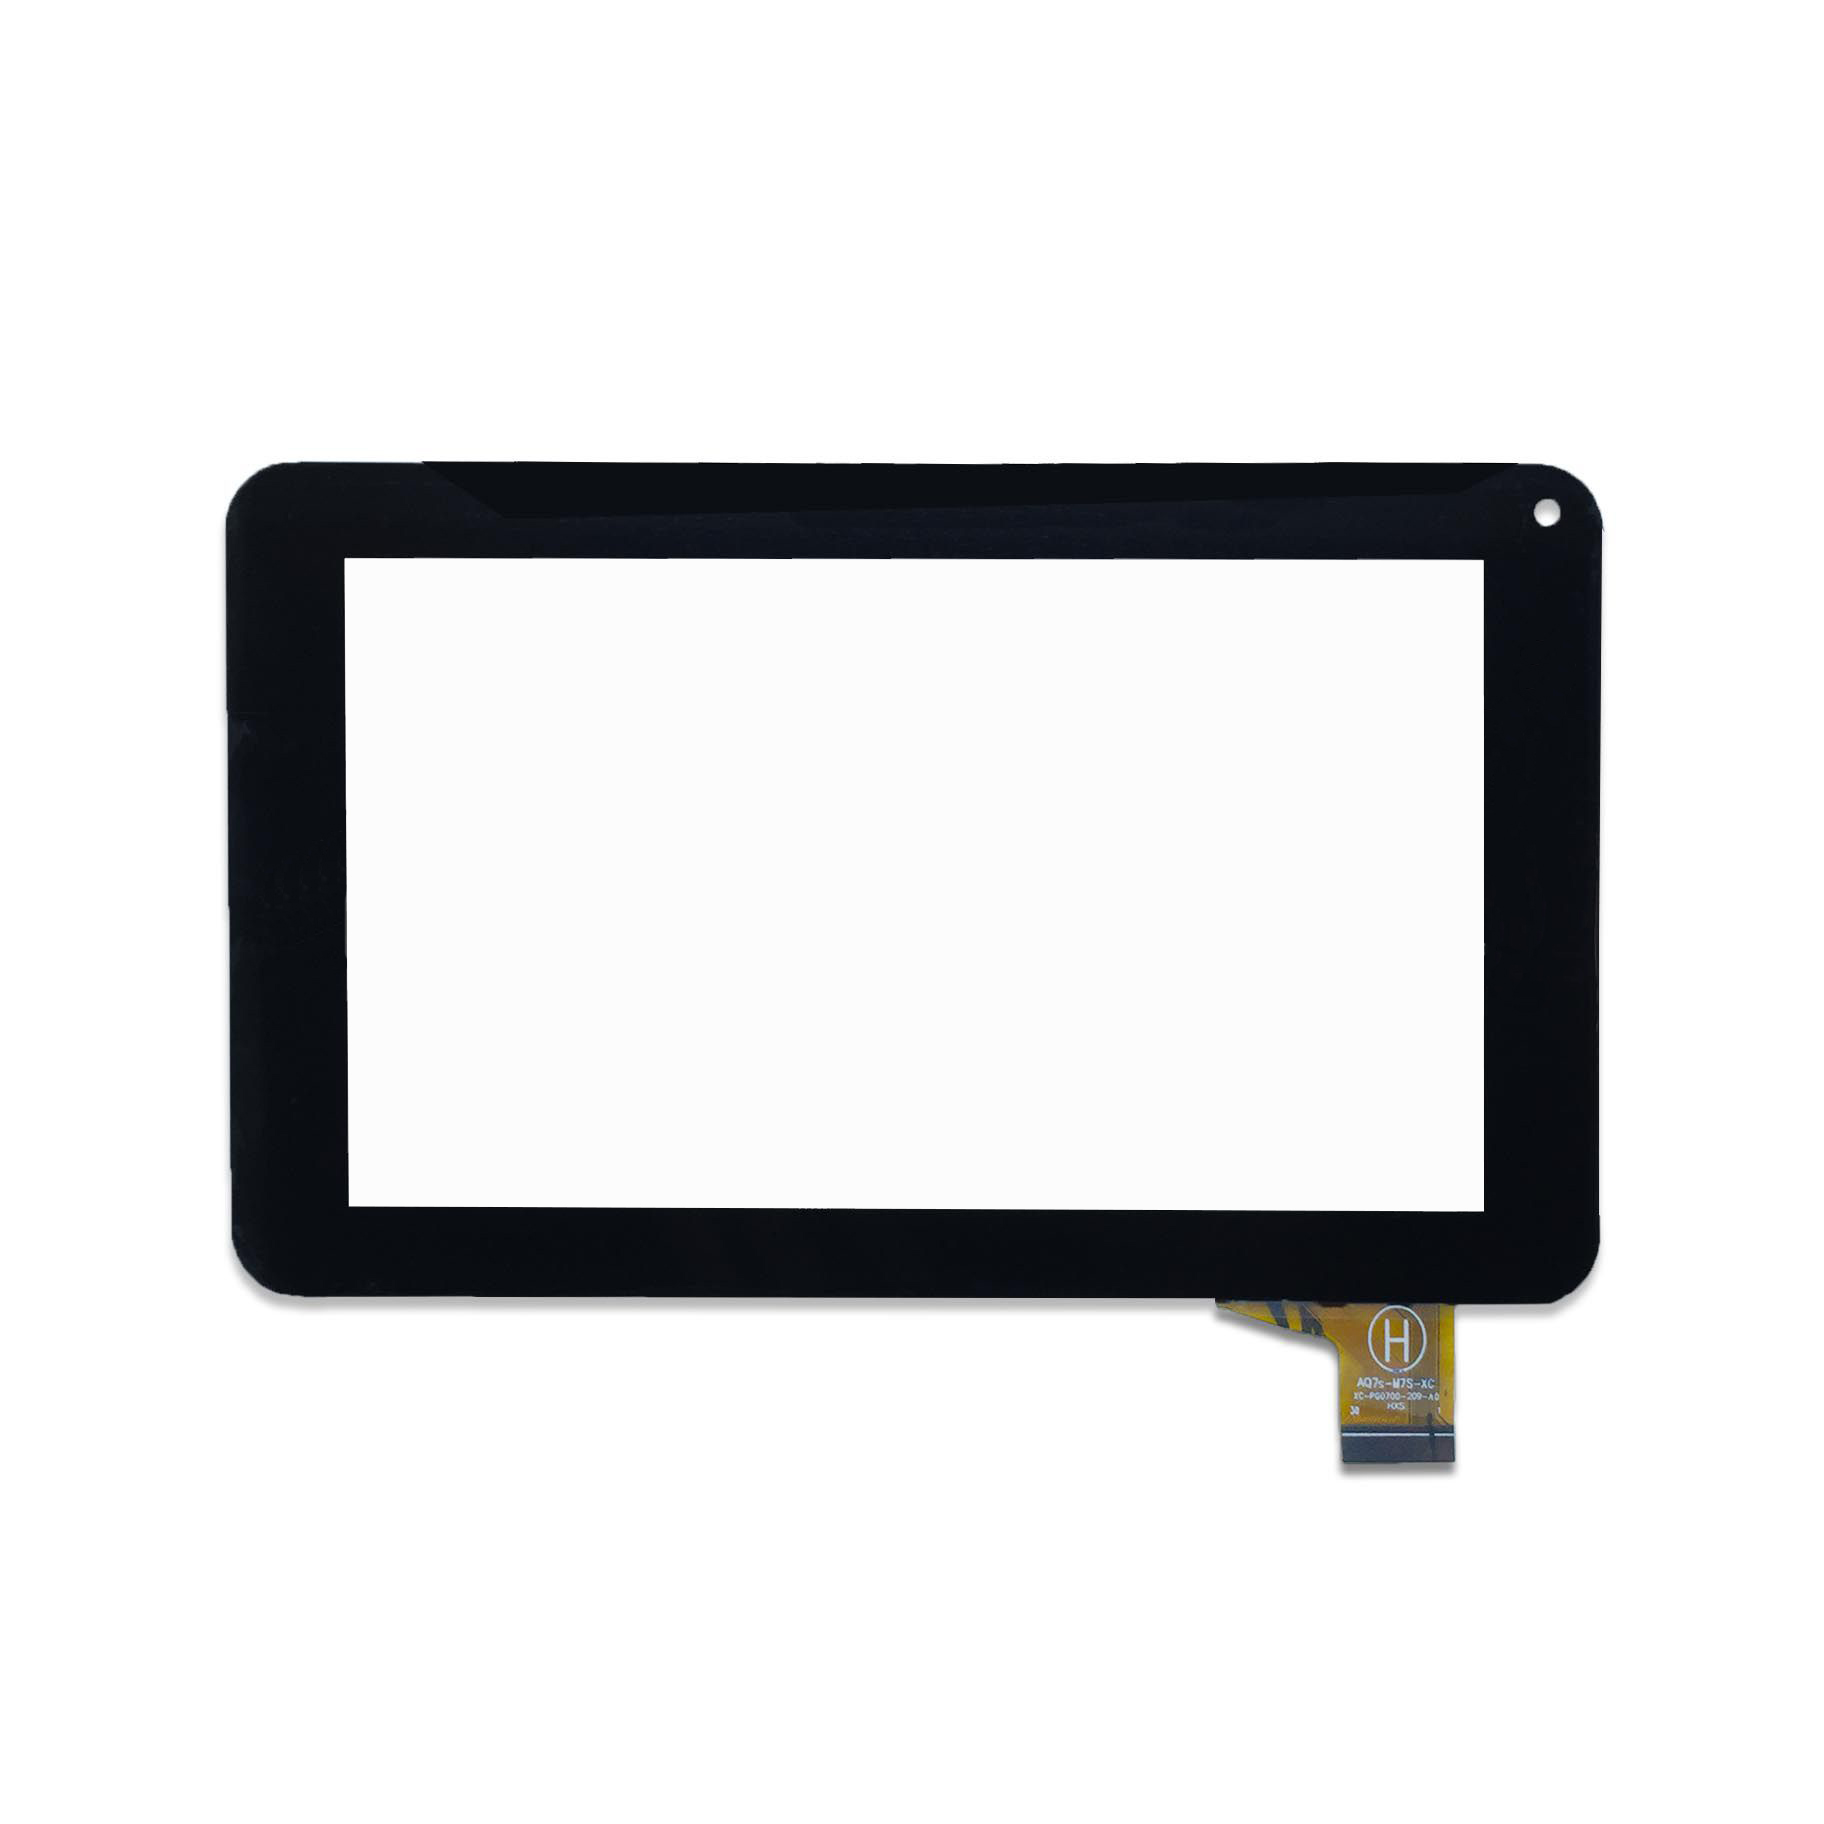 Tela Touch Cce Motion First Tab Ts72 Preto